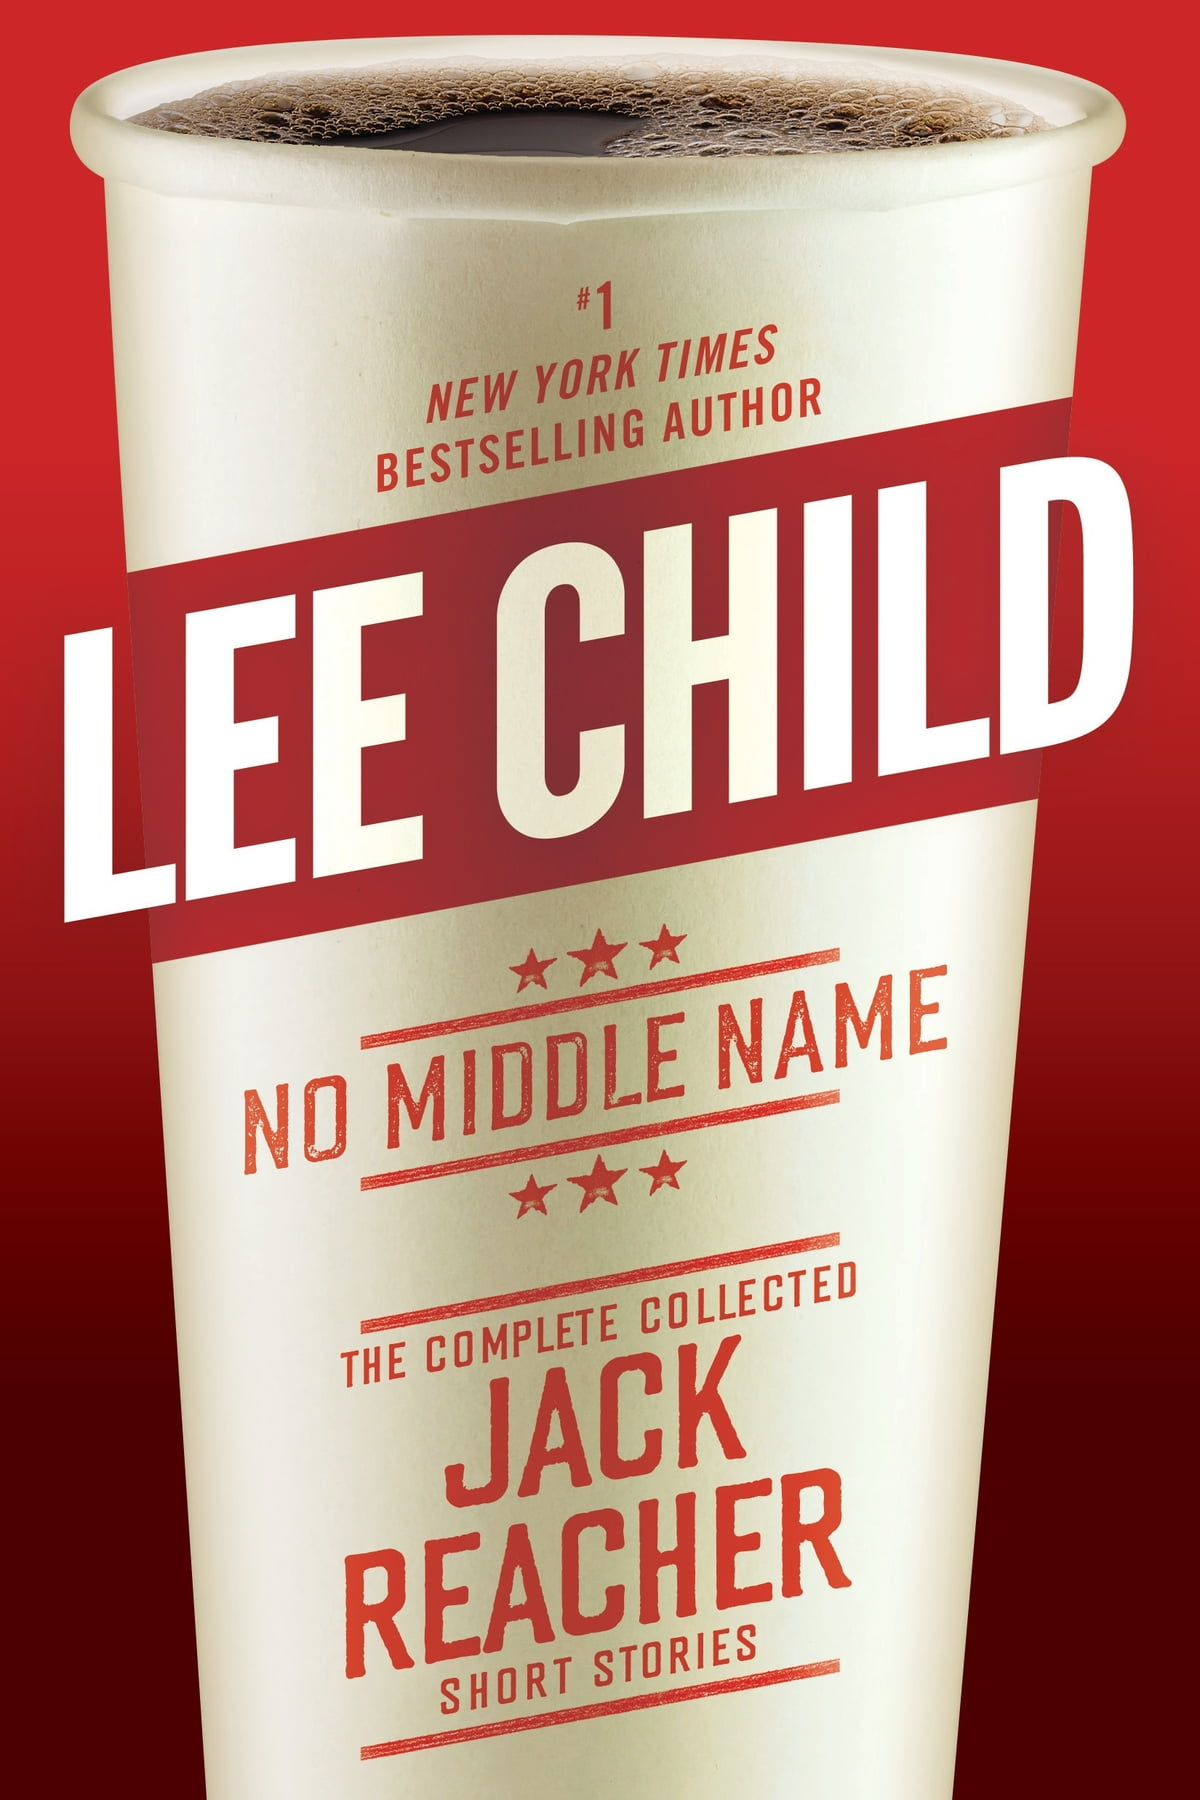 No Middle Name  Theplete Collected Jack Reacher Short Stories Ebook By  Lee Child